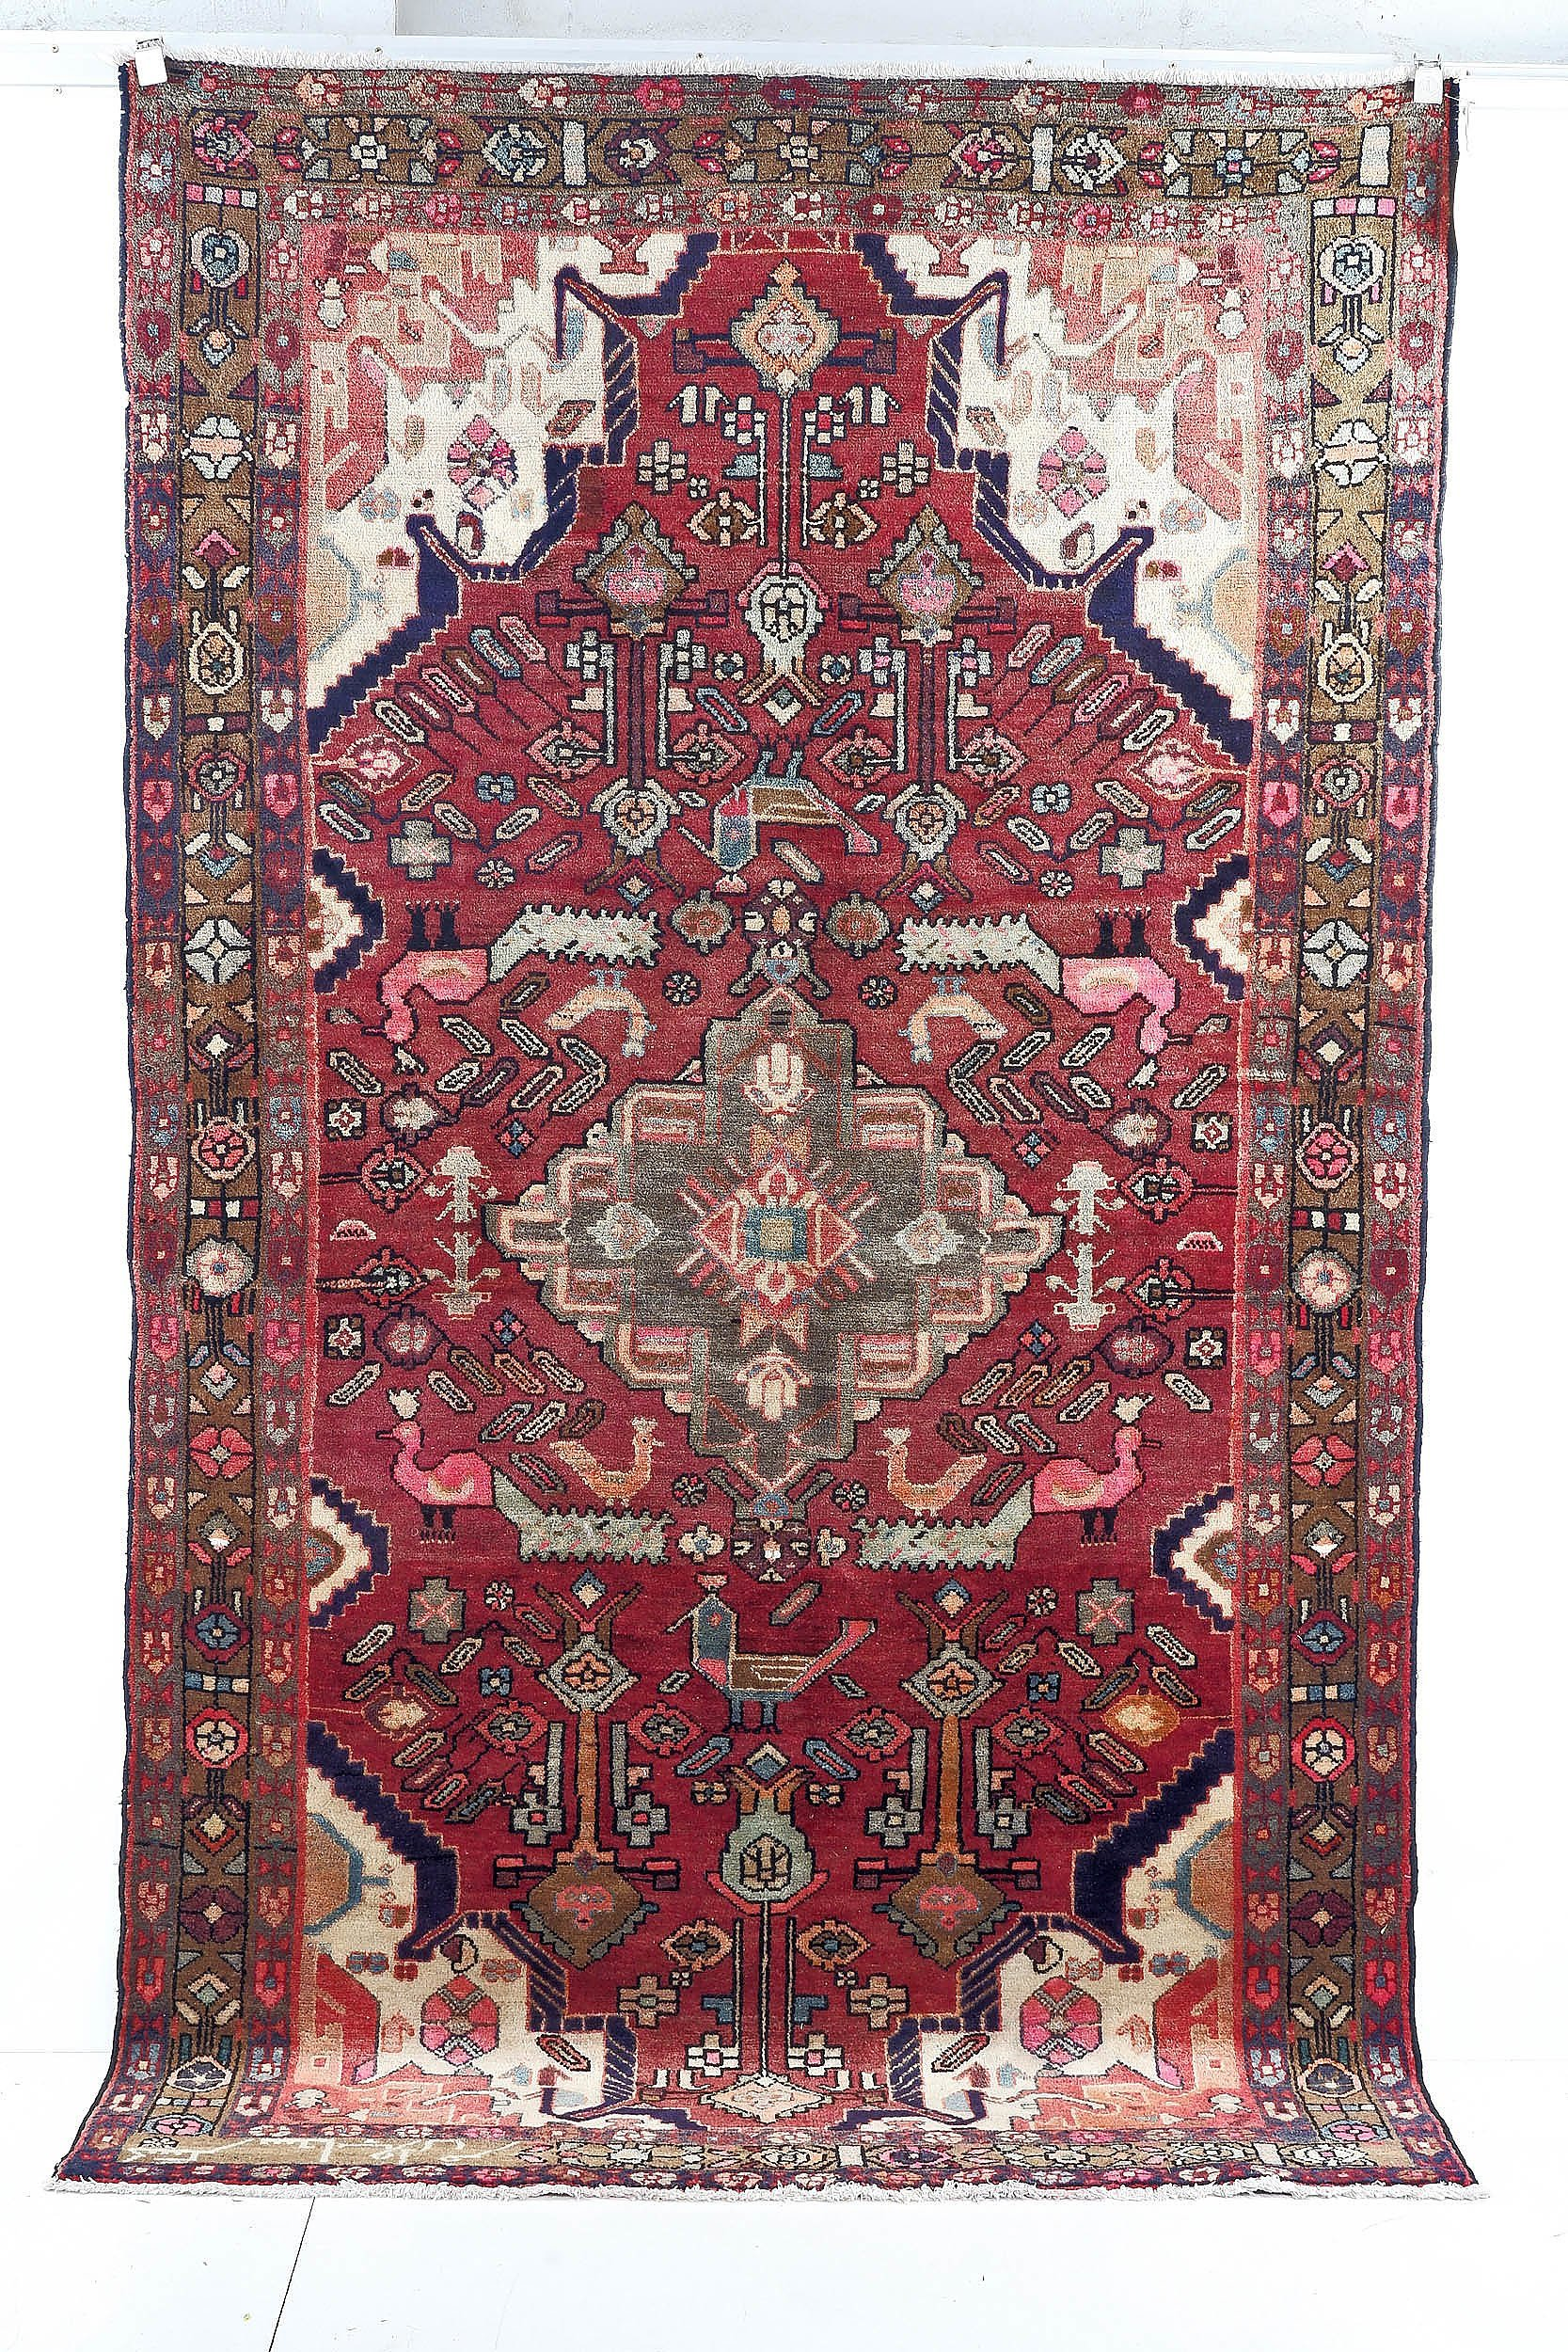 'Persian Nahavad Hand Knotted Wool Pile Rug with Diamond Central Medallion and Floral and Bird Design on a Red Ground'